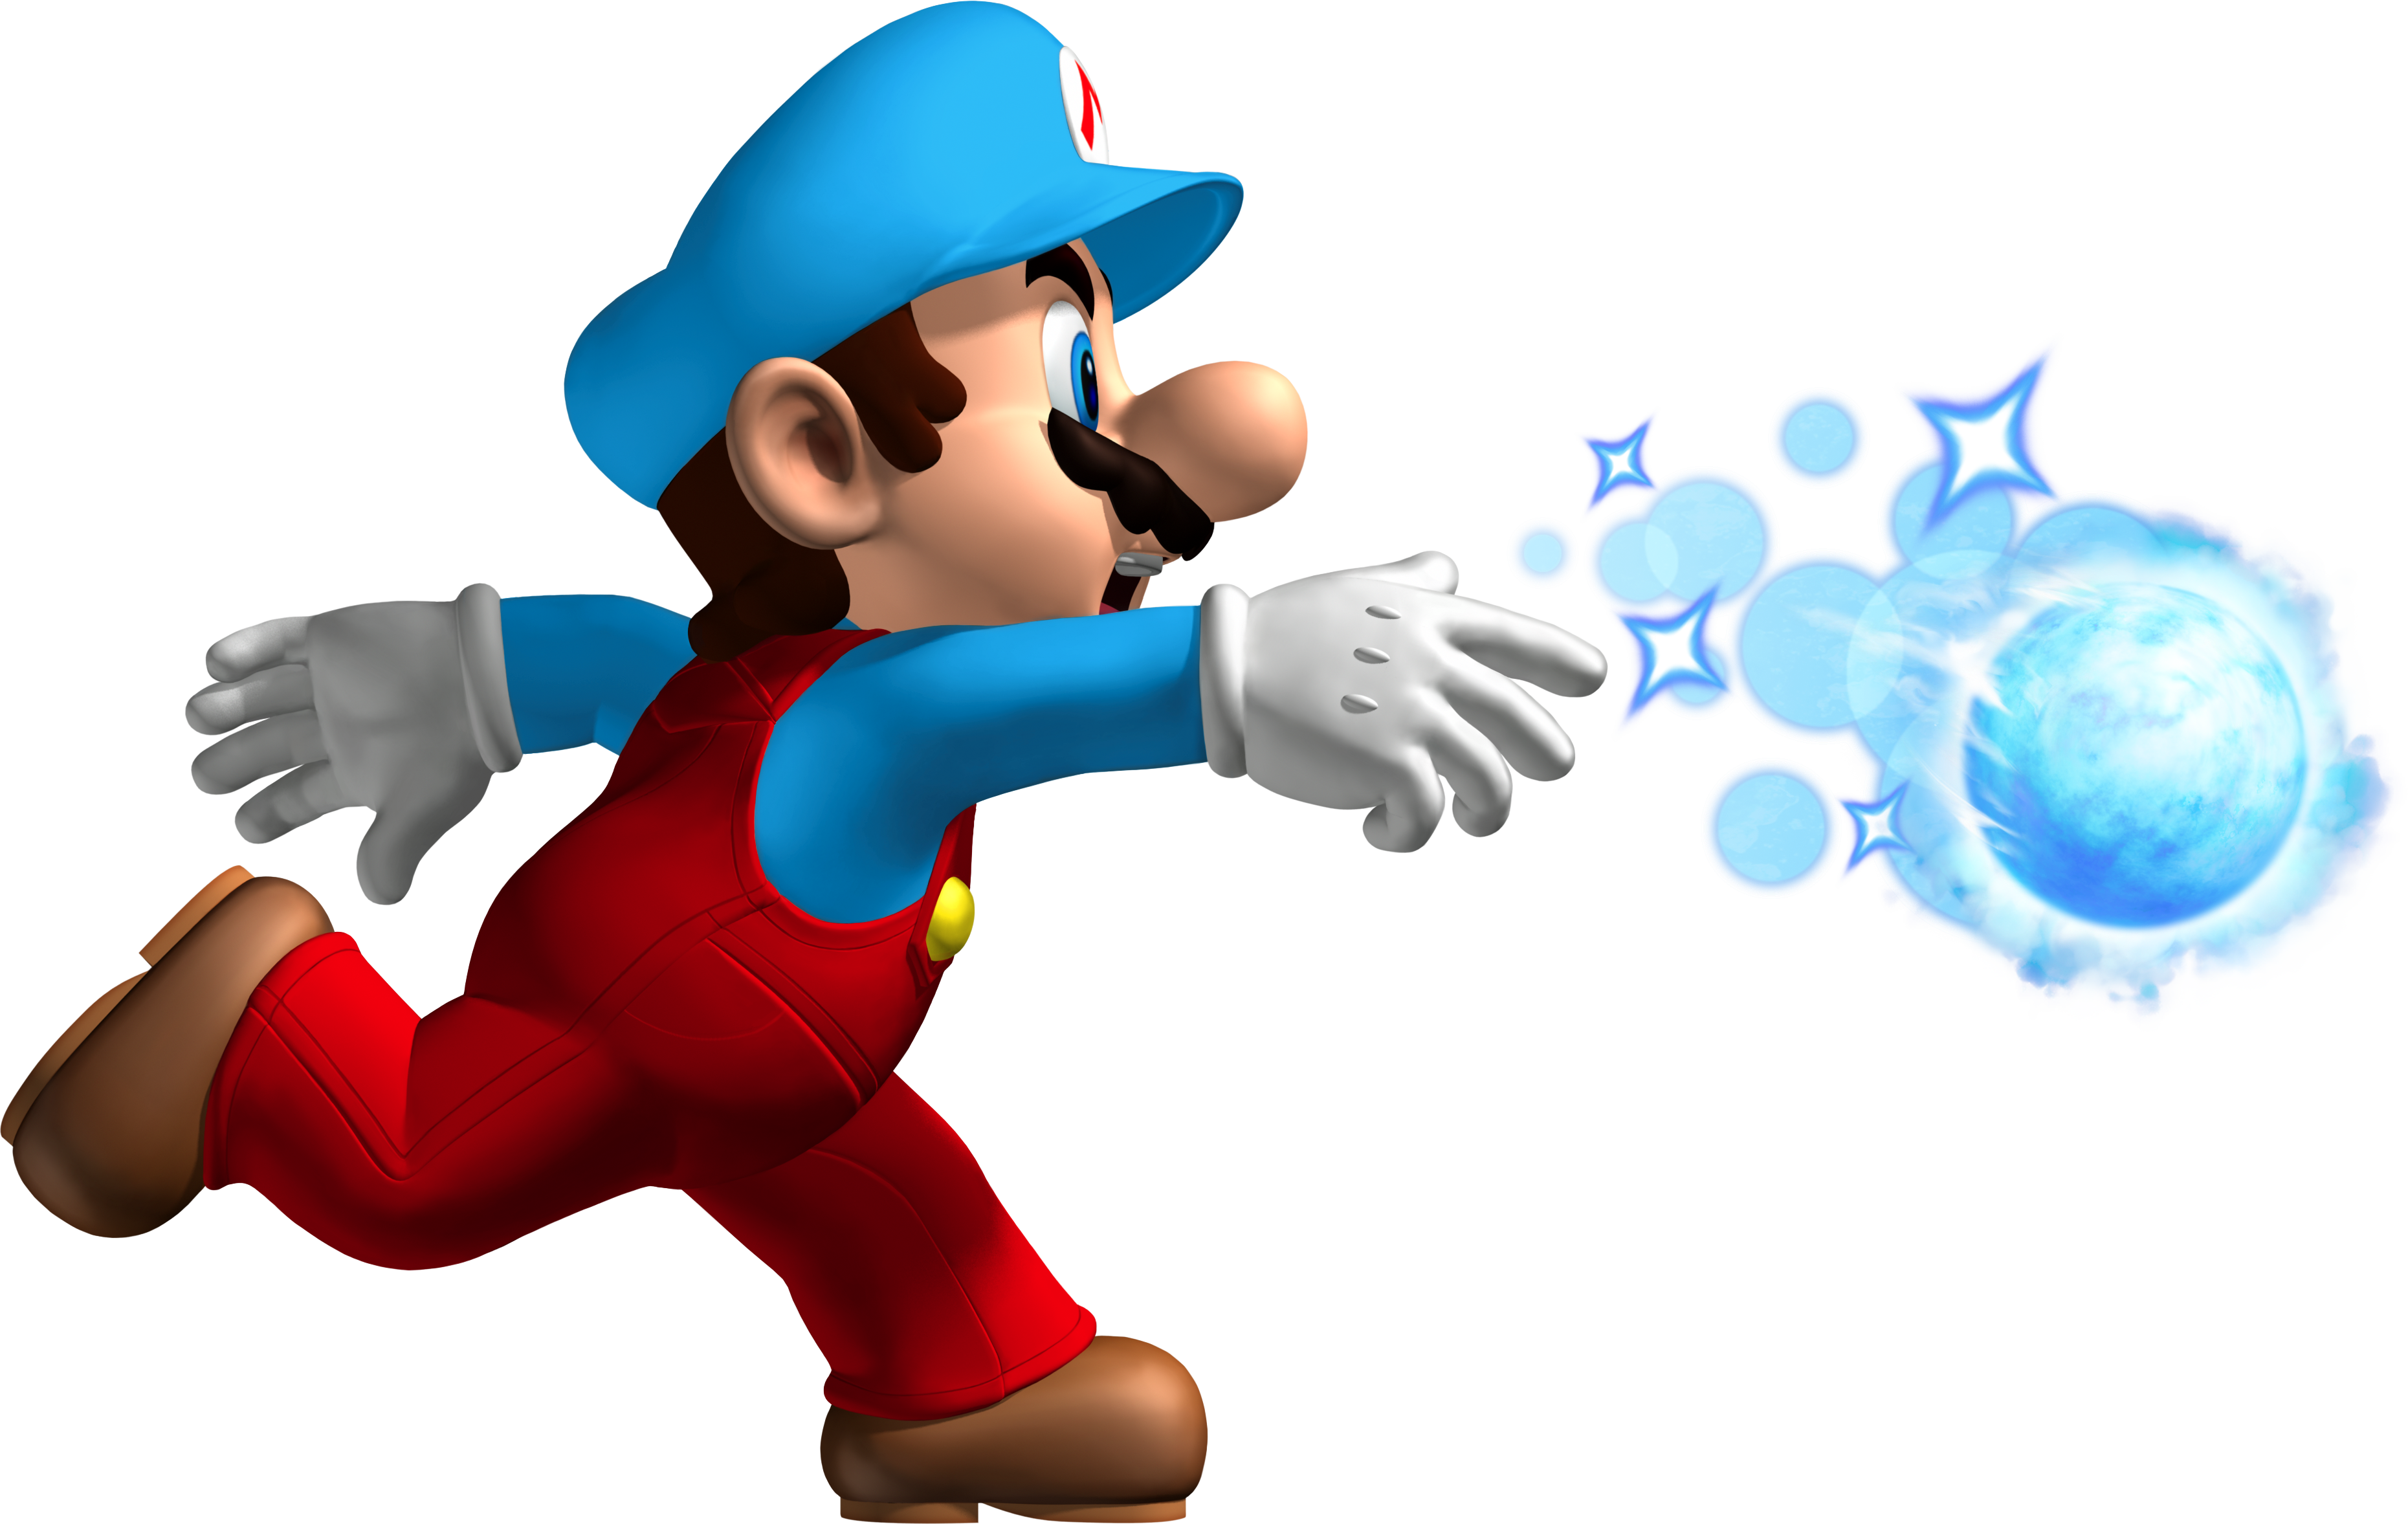 Nsmb Ice Mario Png 3721 2355 With Images